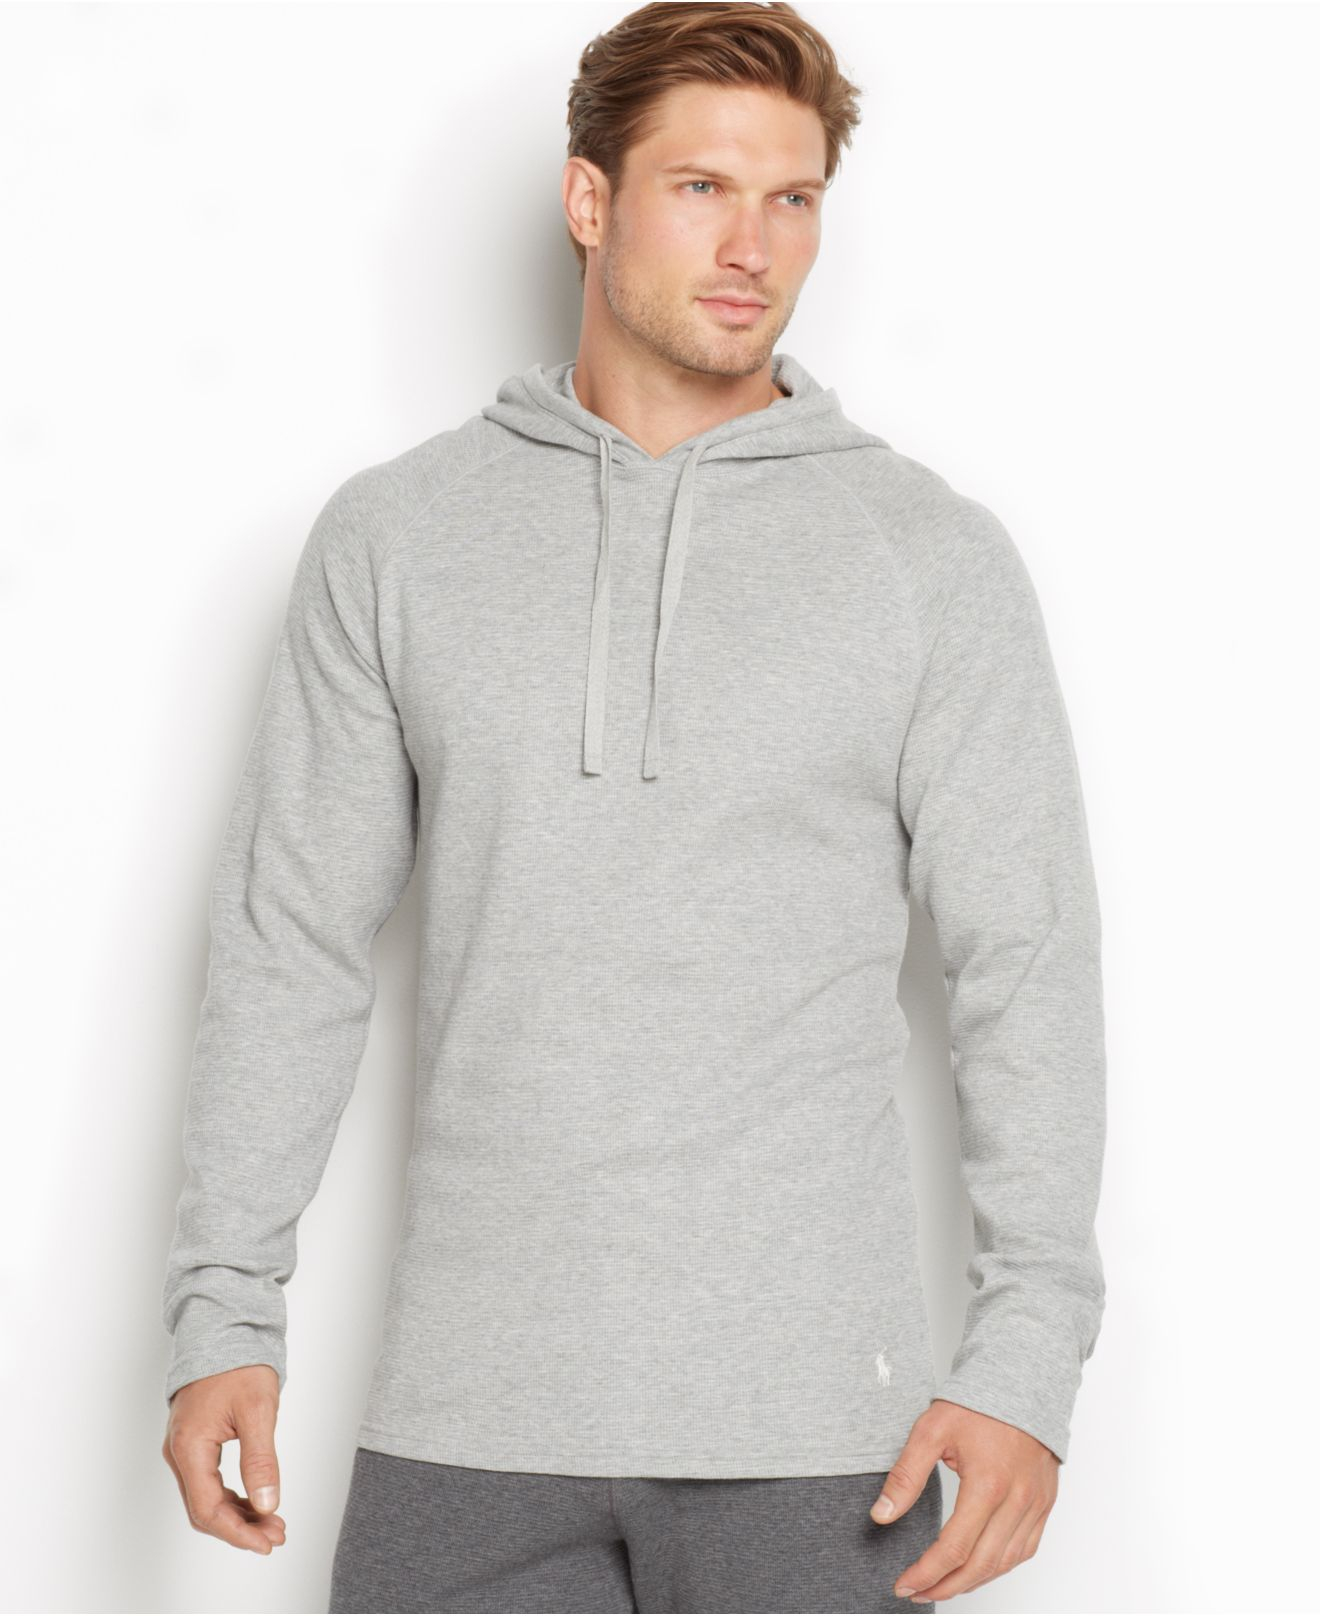 polo ralph lauren men 39 s thermal raglan hoodie in gray for men lyst. Black Bedroom Furniture Sets. Home Design Ideas